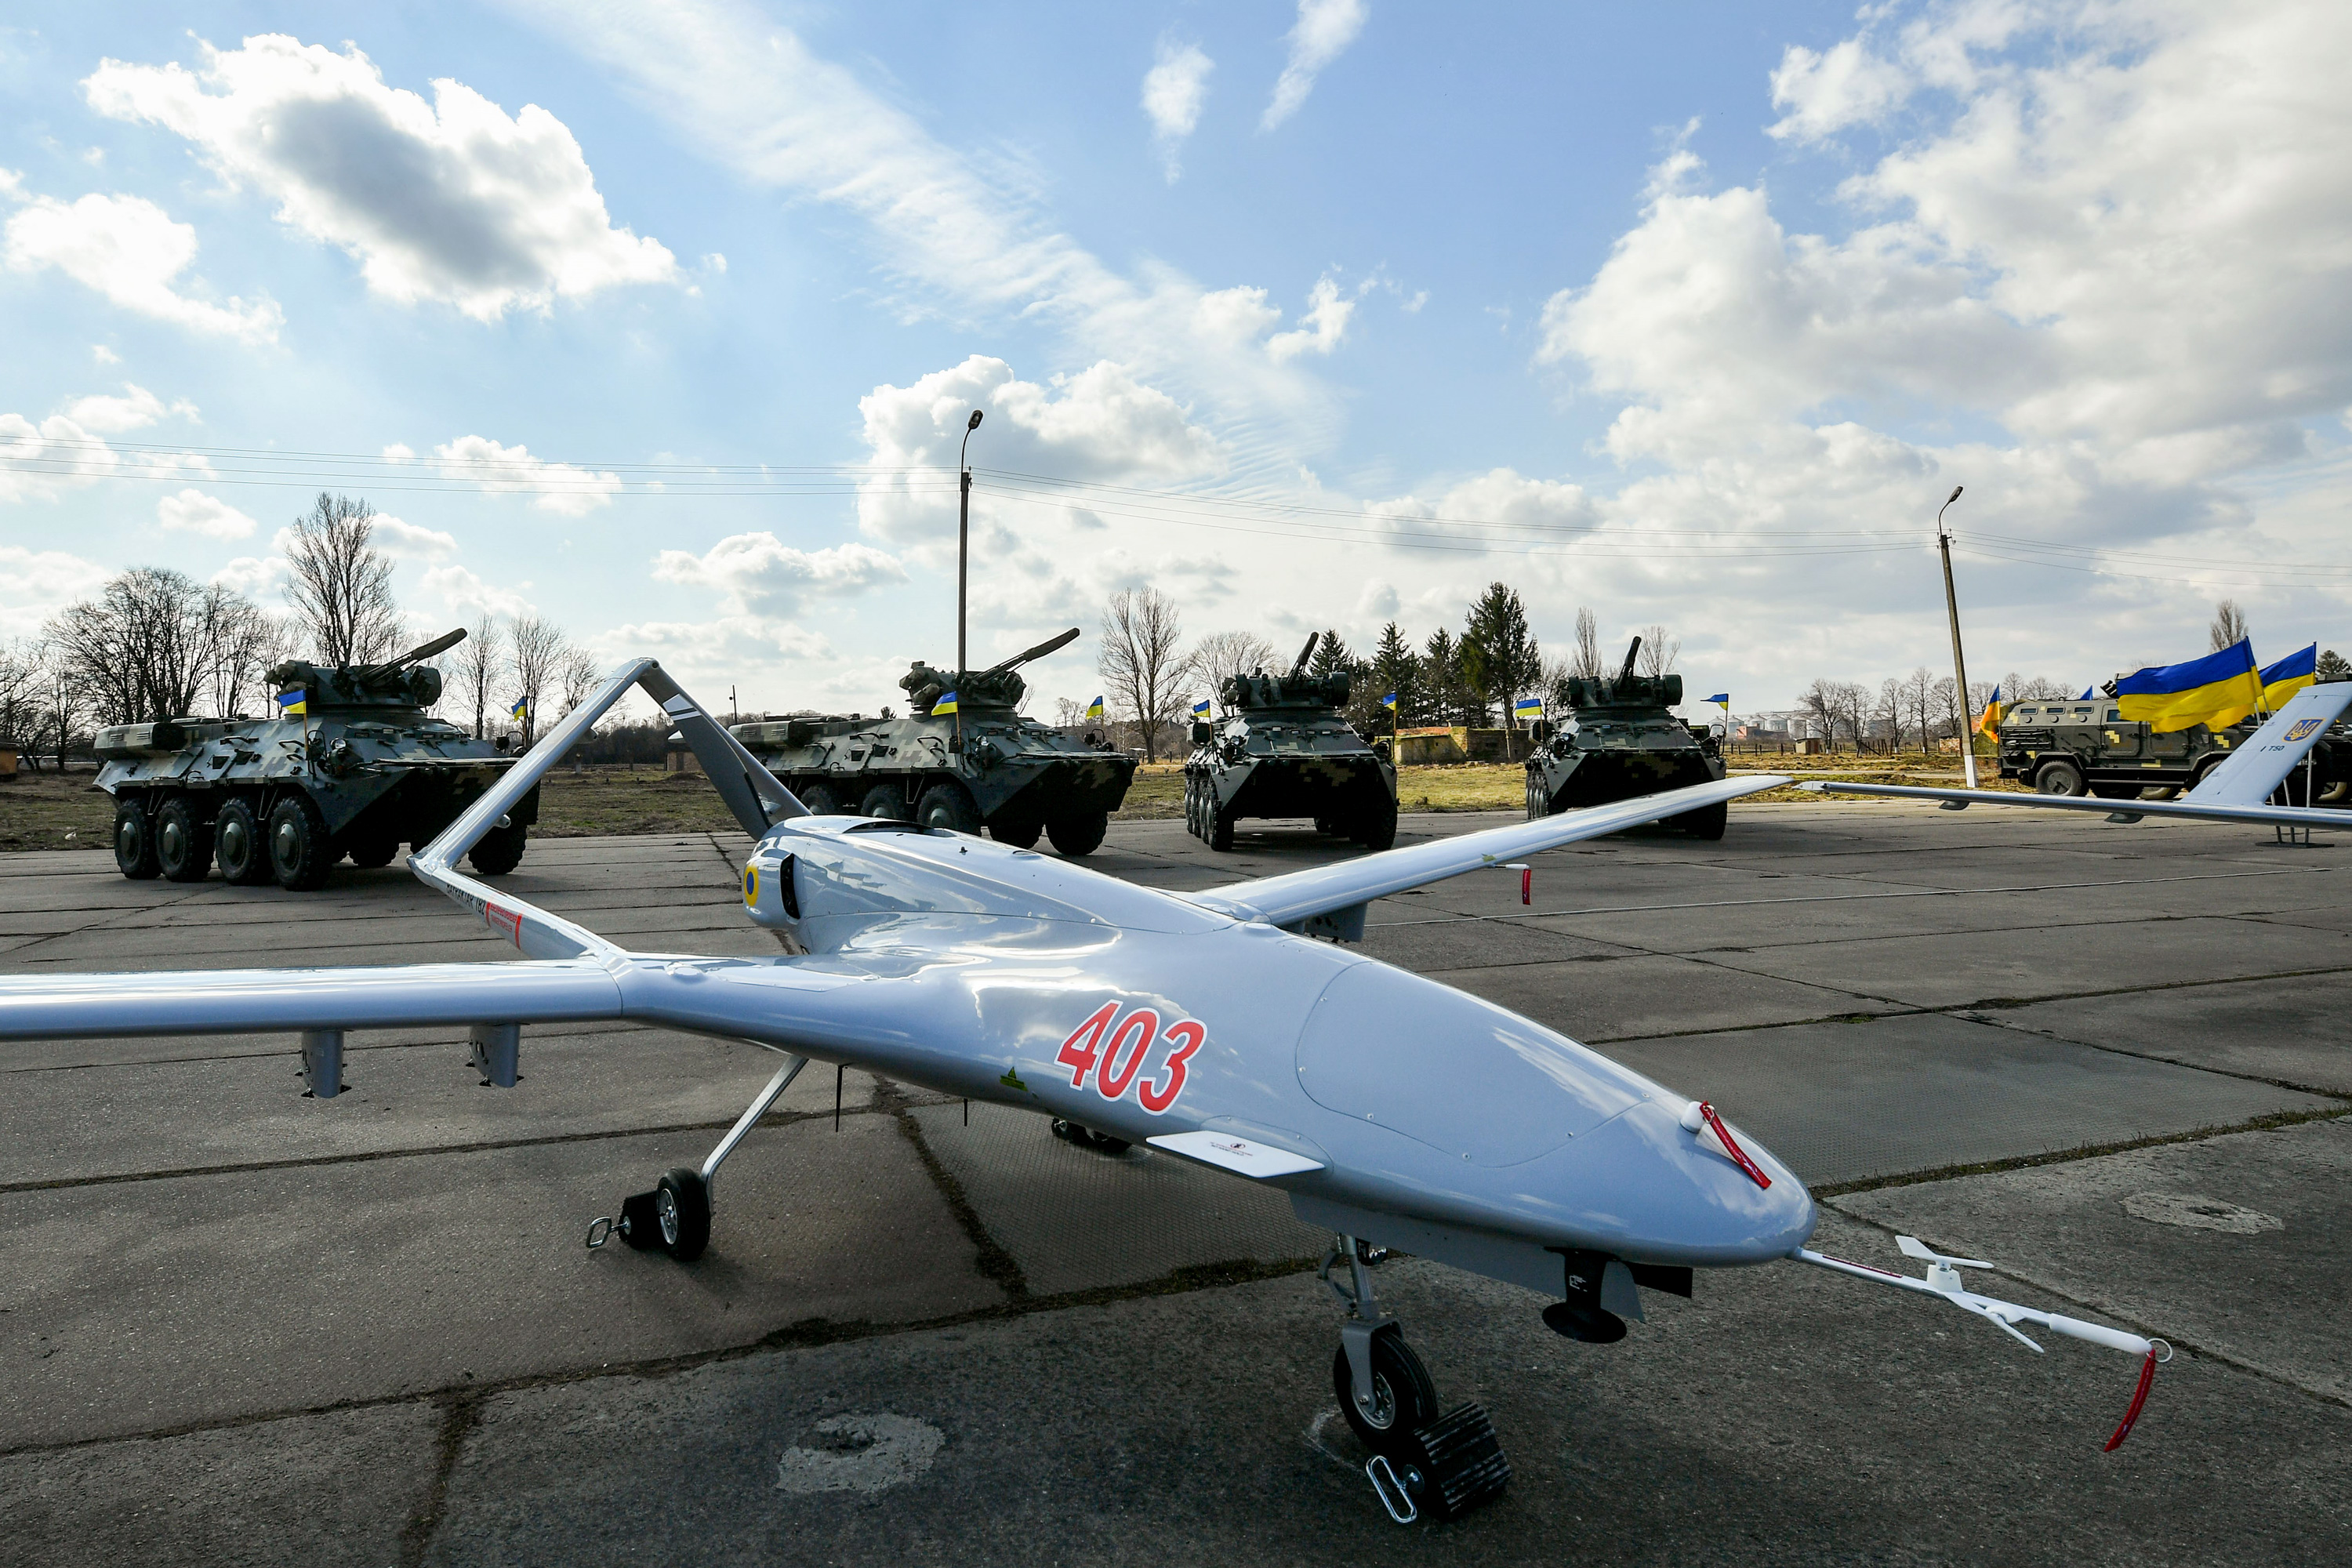 HMELNITSKI, UKRAINE - MARCH 20: Bayraktar TB2 UAVs is seen before the test flight at the military base located in Hmelnitski, Ukraine on March 20, 2019. Bayraktar TB2 has been used by the Turkish Armed Forces and Turkey's Security Directorate since 2015. The TB2 armed UAV, was developed for tactical reconnaissance and surveillance missions and it can also carry ammo, do assaults, and has laser target acquisition. As of January 2019, Turkish Armed Forces had a fleet of 75 Bayraktar TB2 platforms. Earlier in January, Poroshenko announced that Ukraine signed an agreement to purchase Bayraktar TB2 armed UAVs from Turkey for the Ukrainian army.  (Photo by Press Office of the President of Ukraine / Mykola Lararenko / Handout/Anadolu Agency/Getty Images)